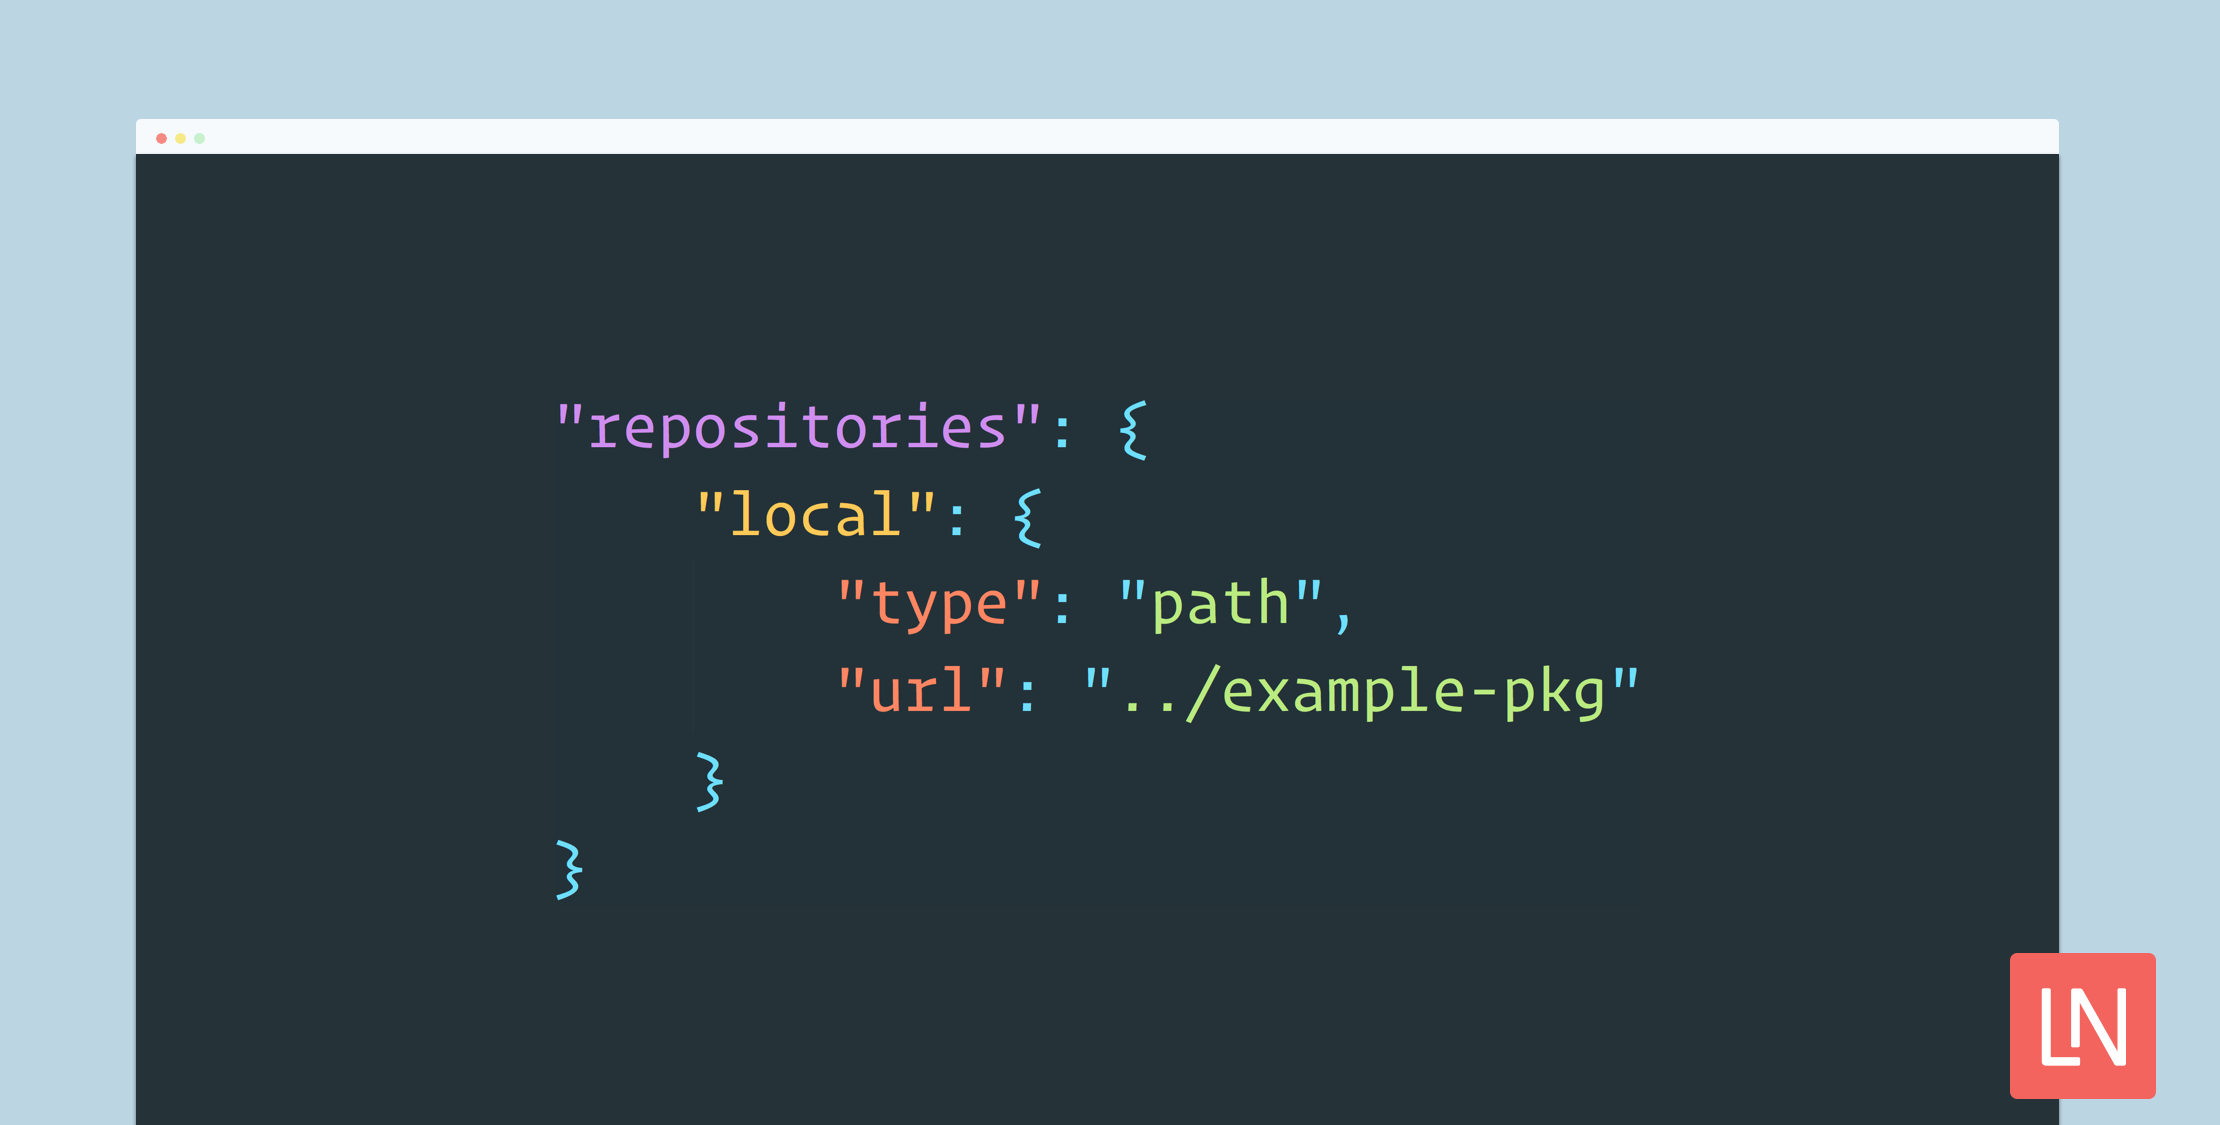 composer-local-laravel-package-development.png